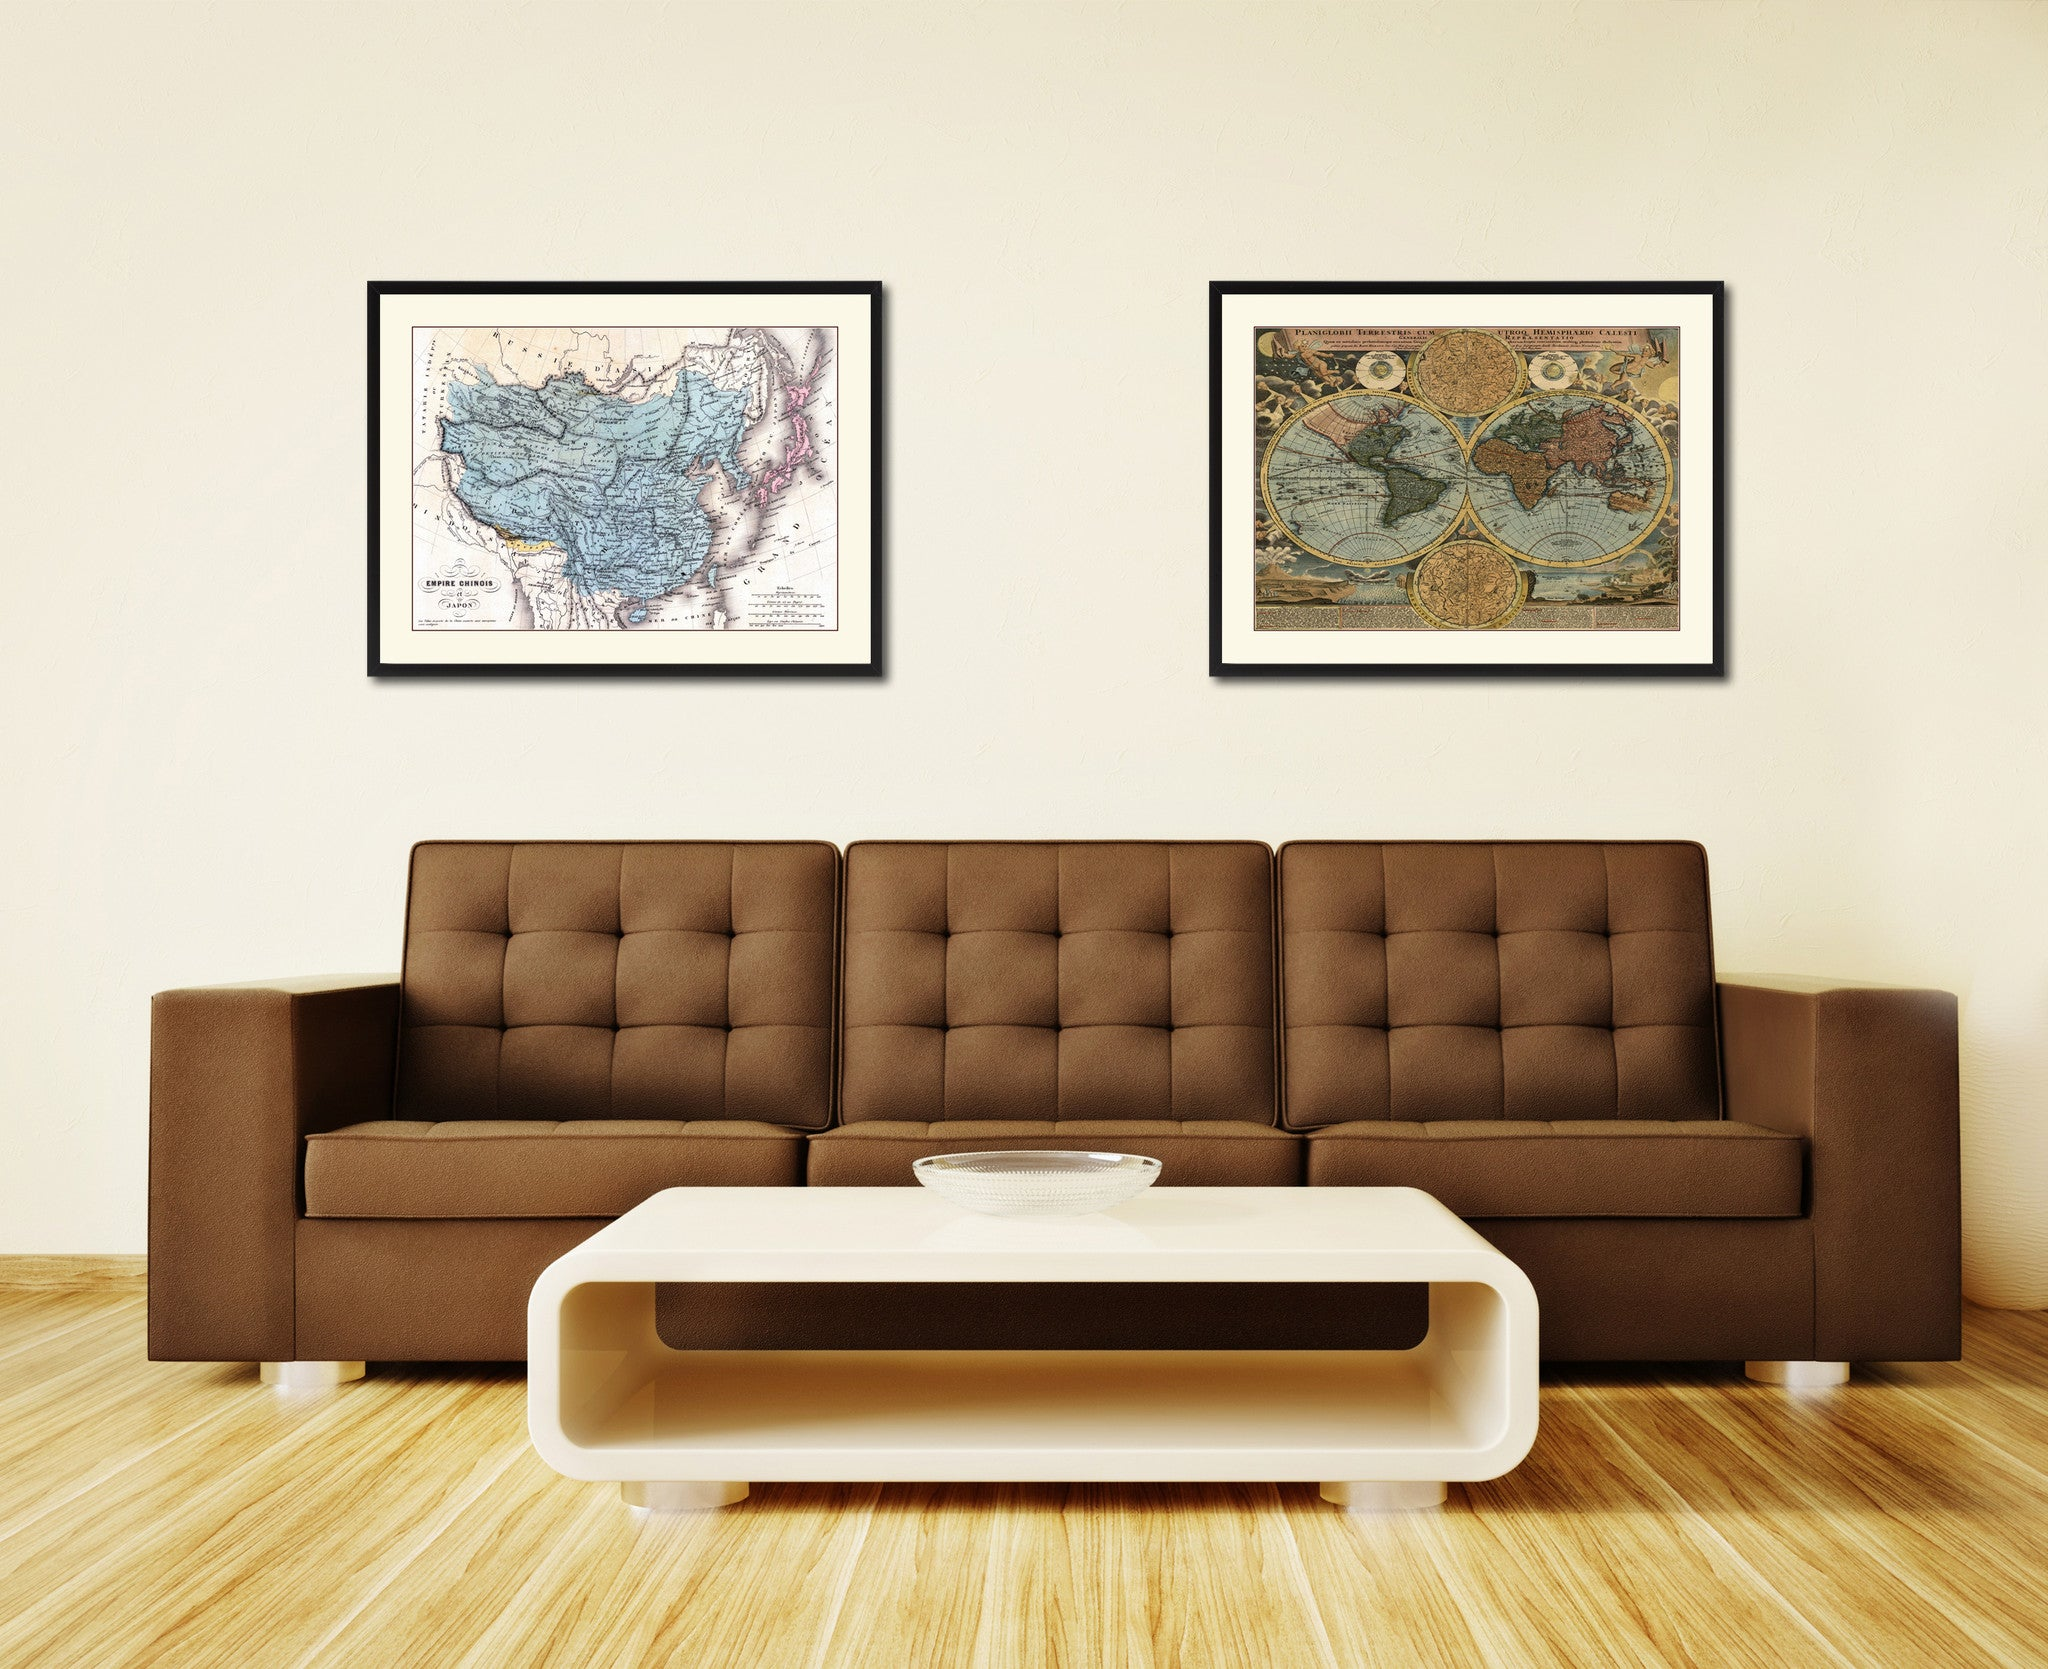 China Japan Korea Vintage Antique Map Wall Art Home Decor Gift Ideas Canvas Print Custom Picture Frame